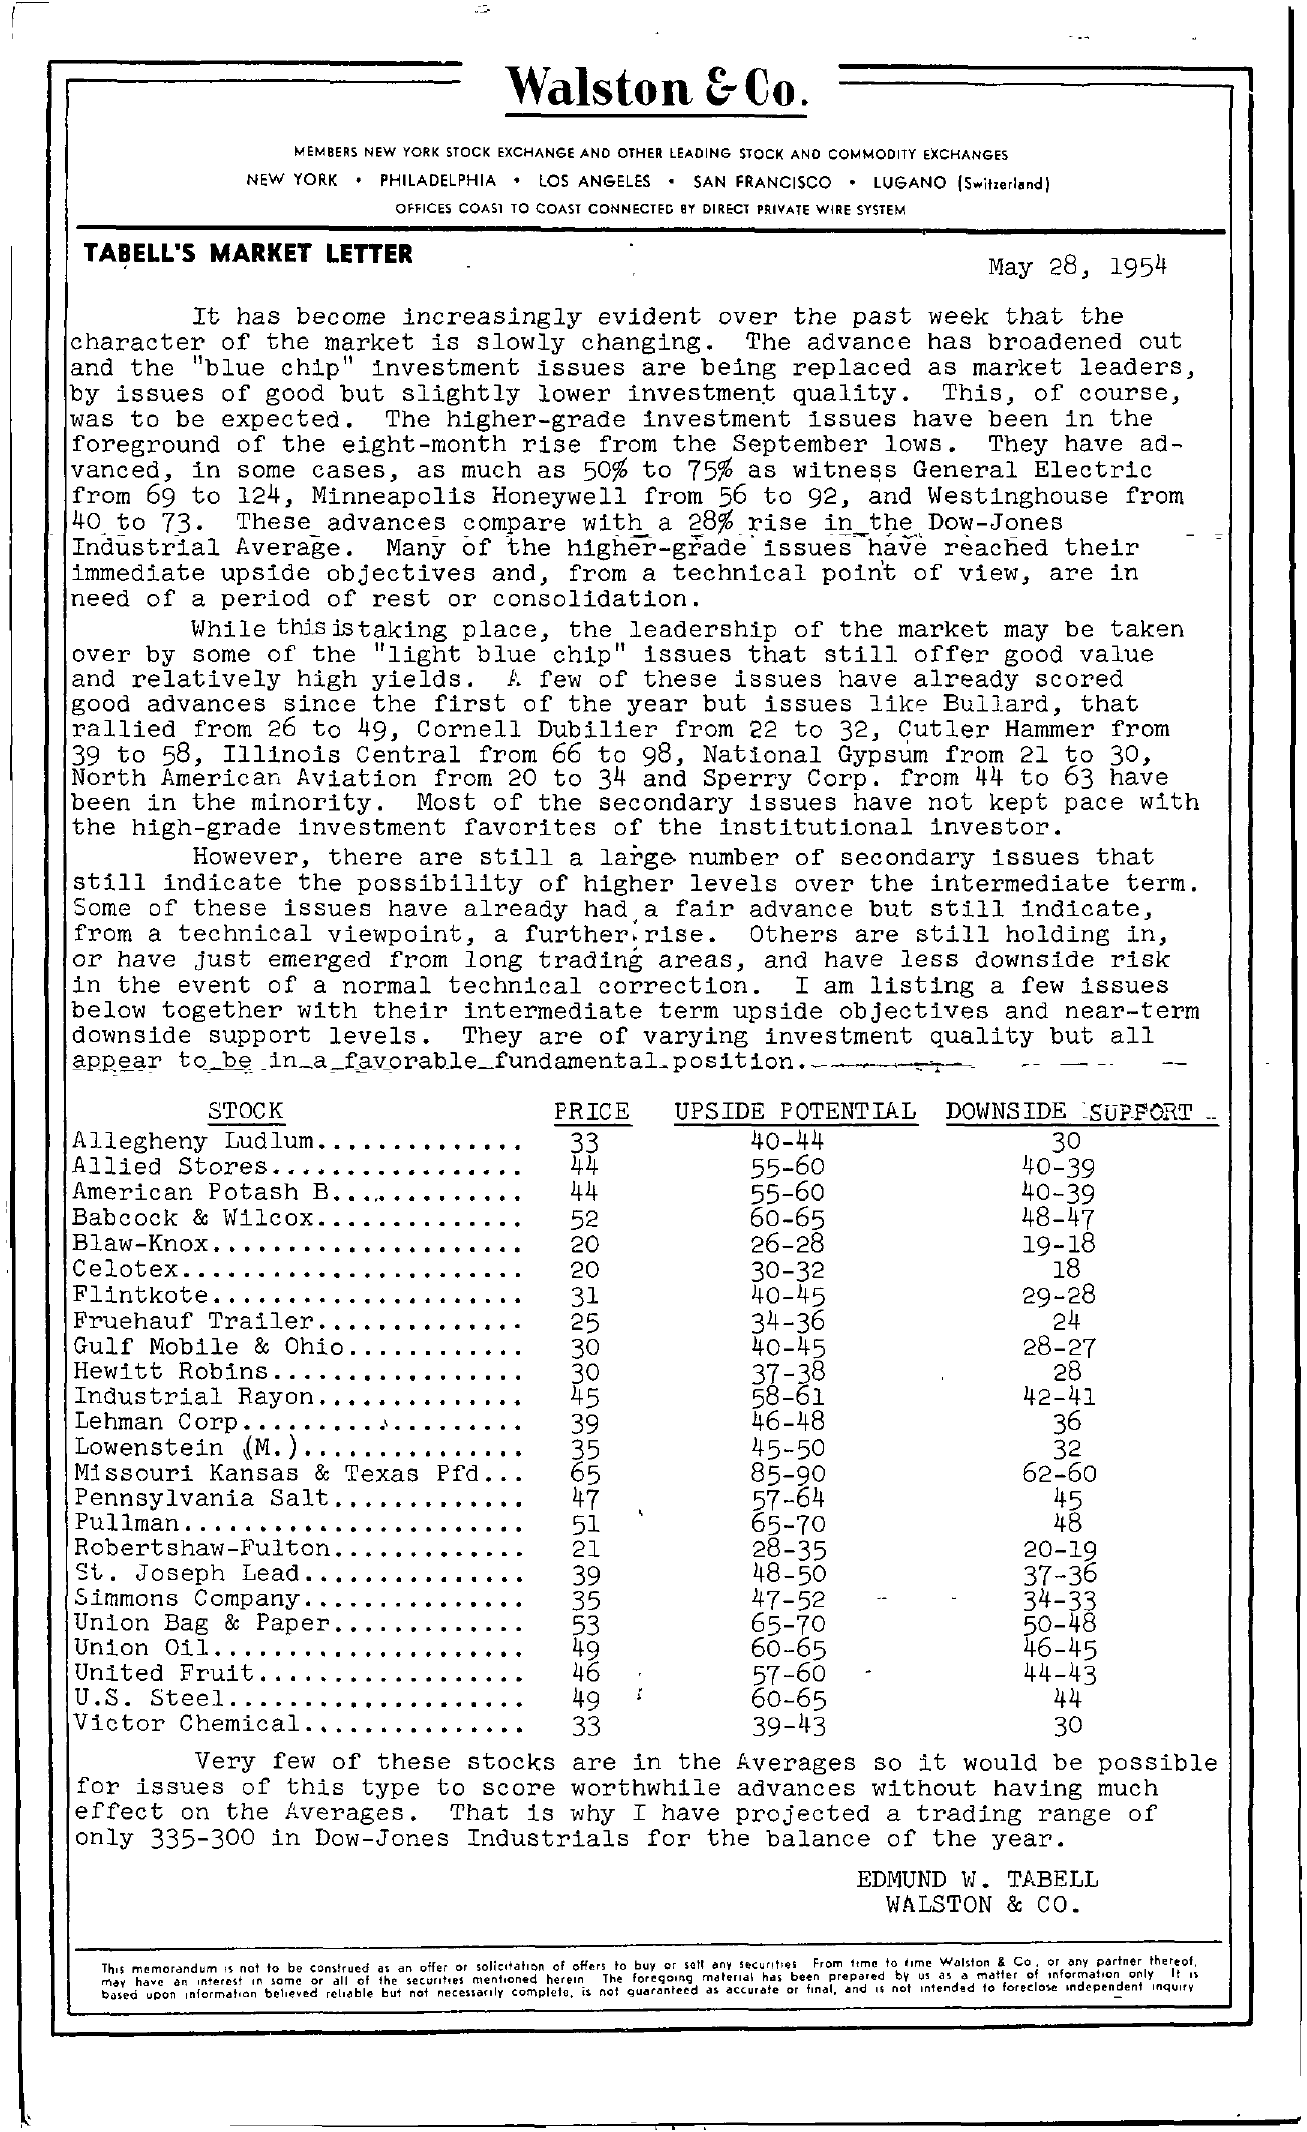 Tabell's Market Letter - May 28, 1954